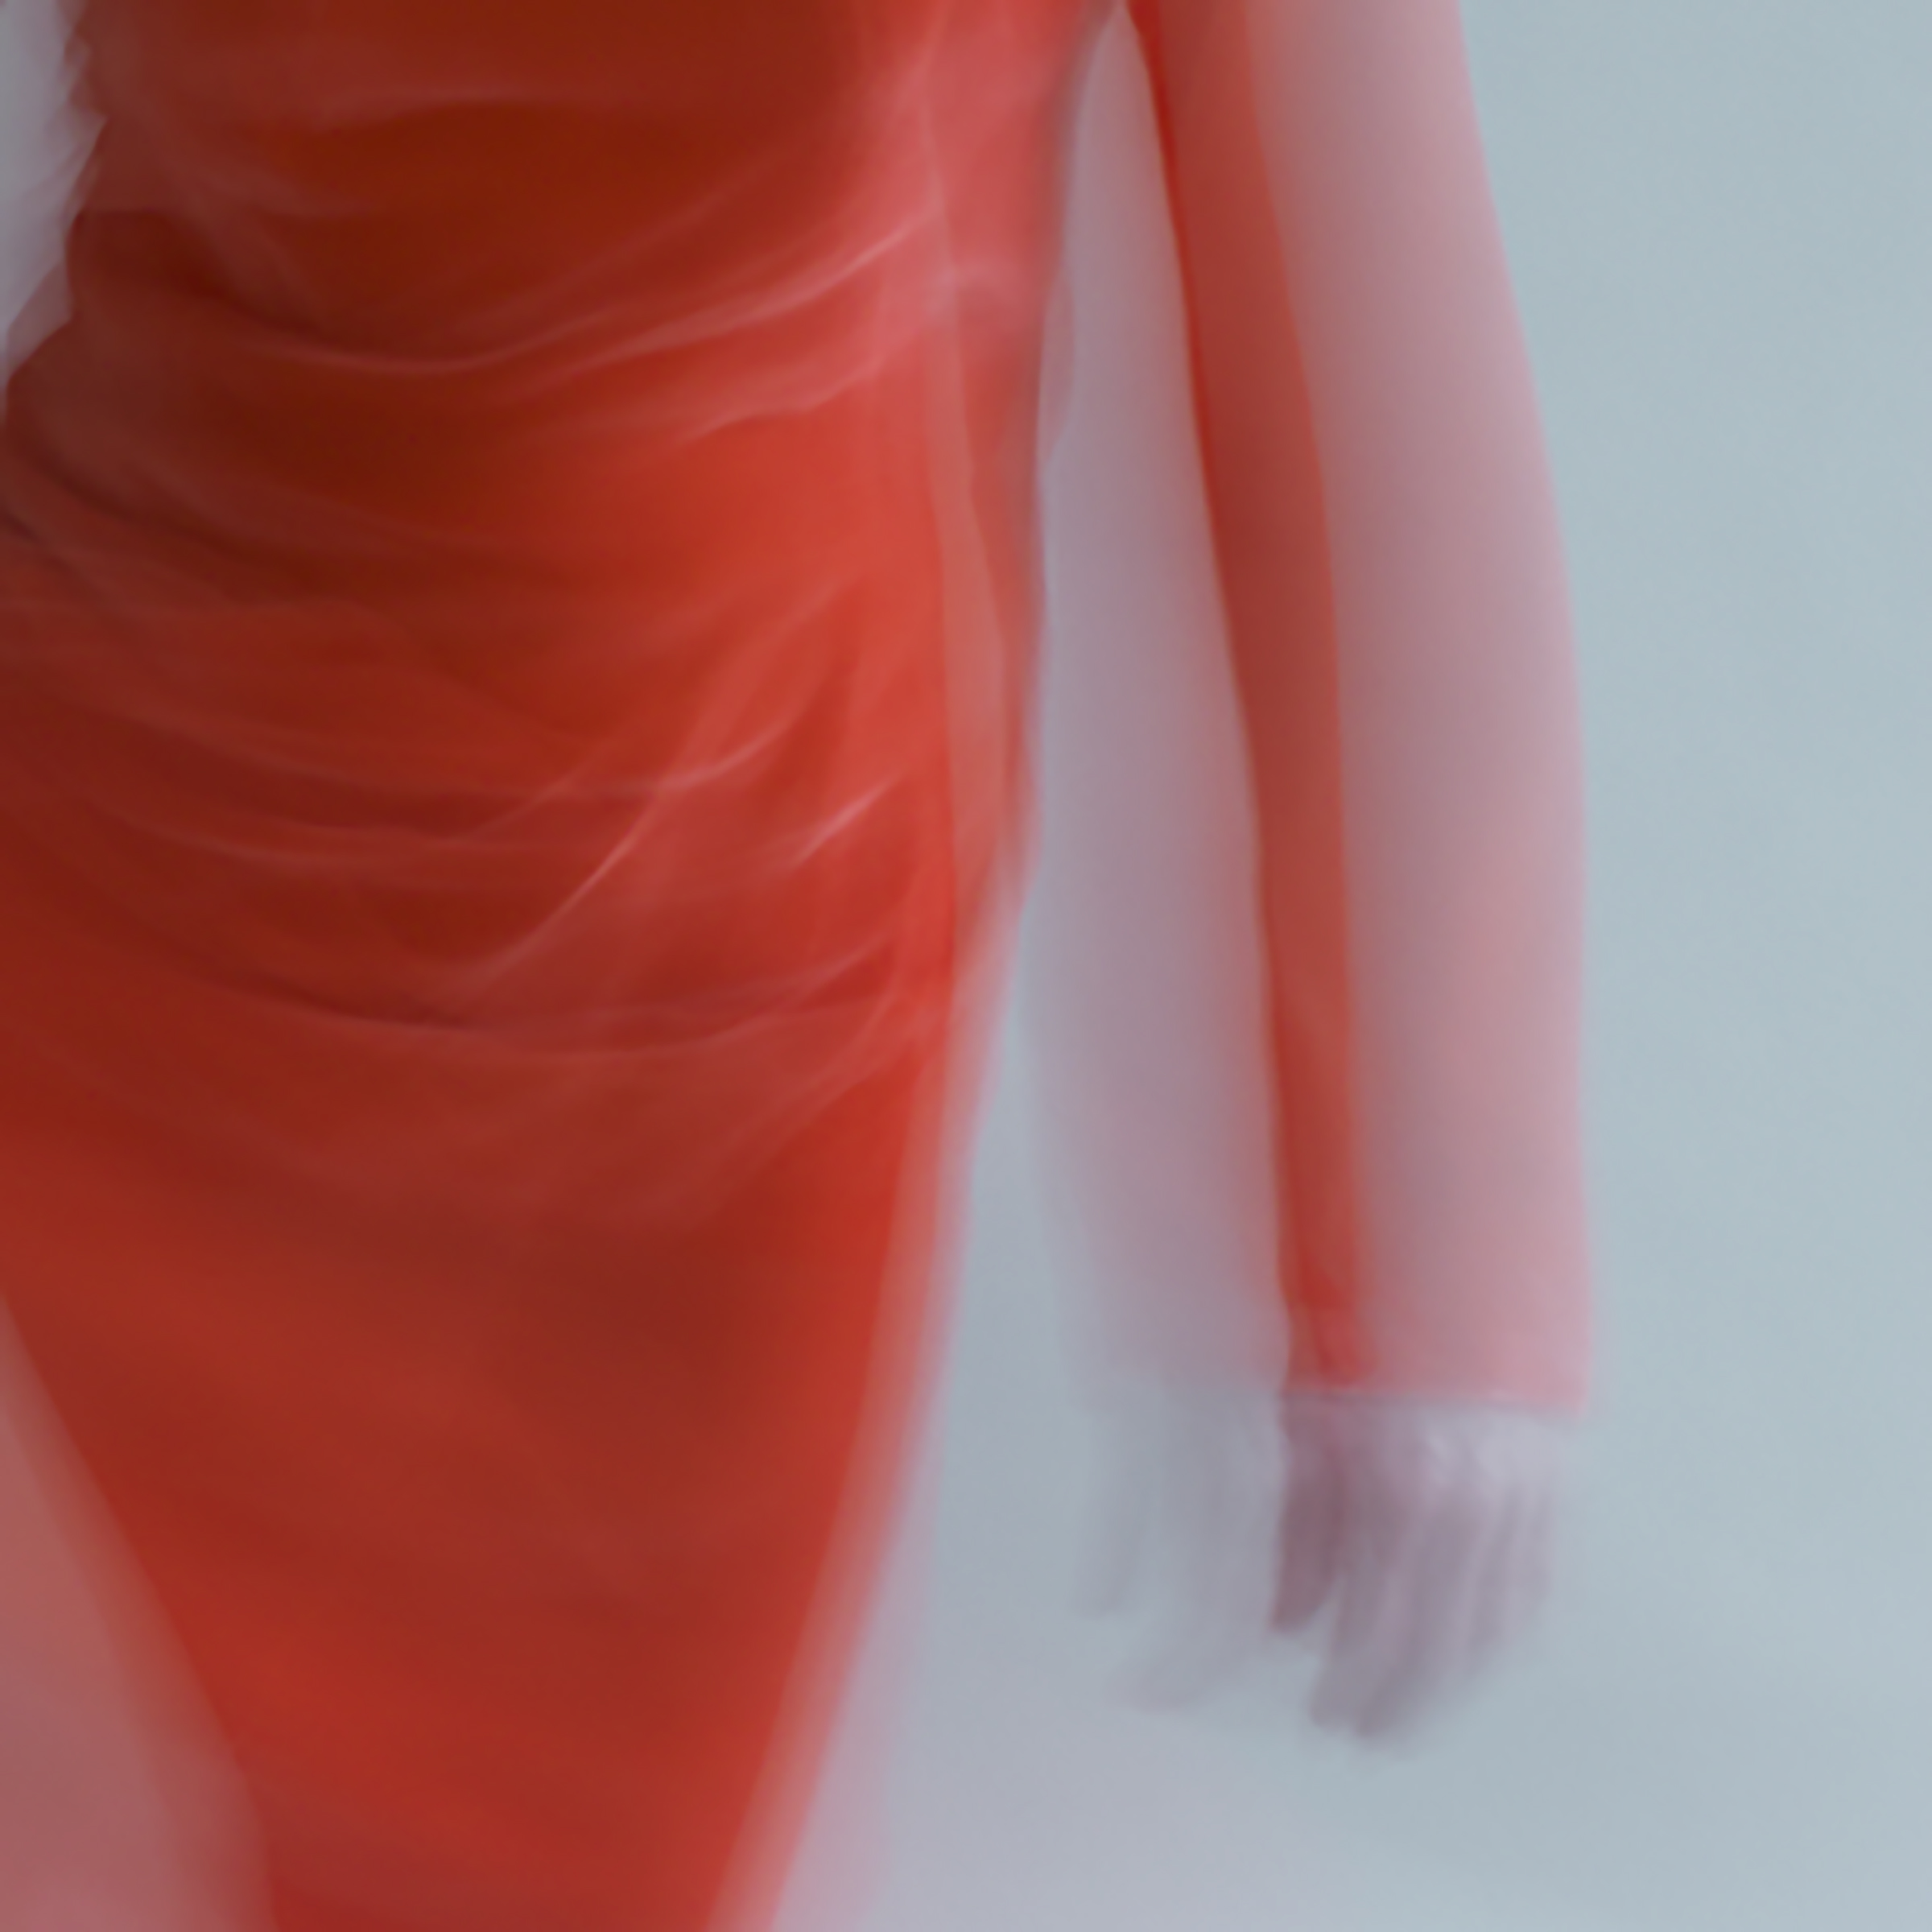 forms of things, 1 , 2014 20 x 20 in. Archival pigment print on Canson paper Edition of 5